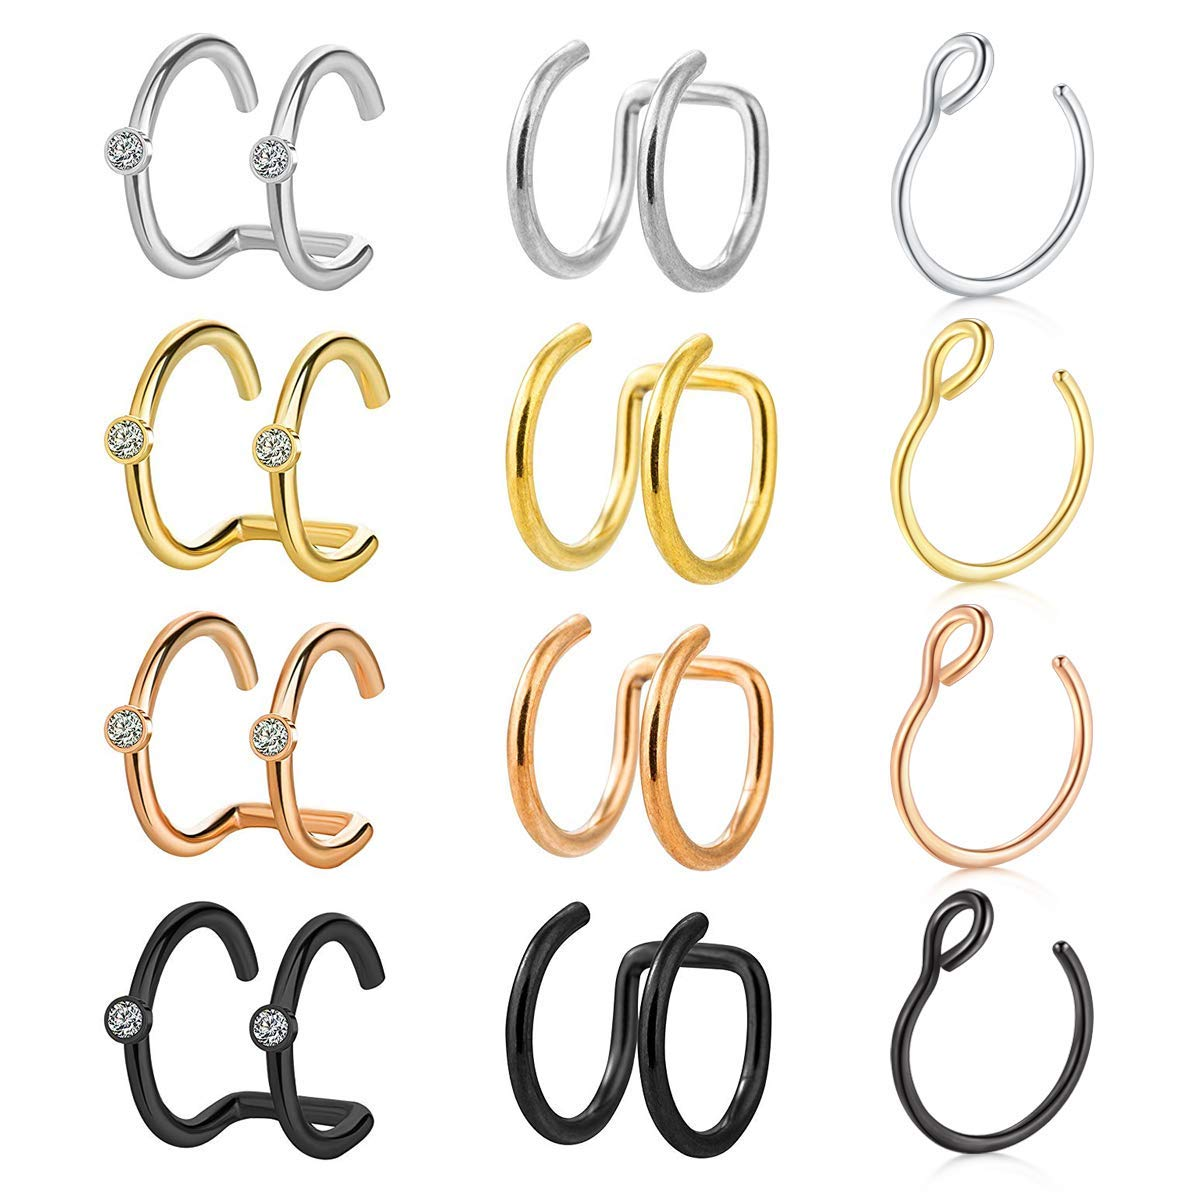 VCMART Stainless Steel Ear Cuff Helix Cartilage Clip On Wrap Earrings Fake Nose Ring Non-Piercing Adjustable Men Women